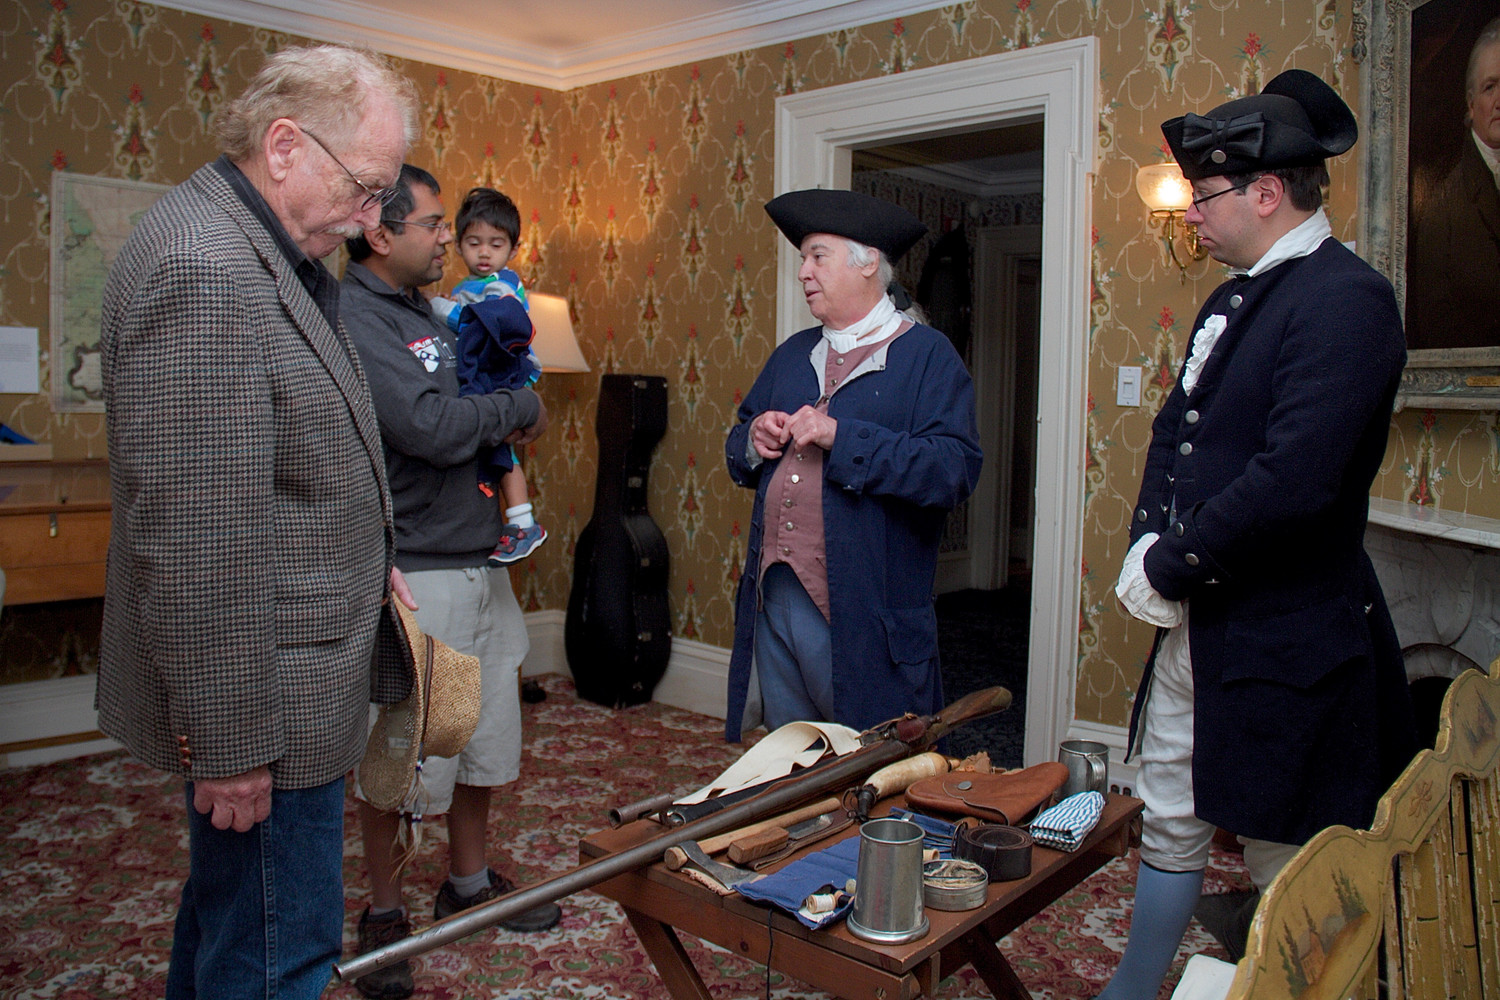 Charles Monette, far left, and Niten Jaiswal and his 18-month-old son, Rian, learned about colonial militia gear from Robert Ambrose and Patrick Mantle, members of the Huntington Militia.